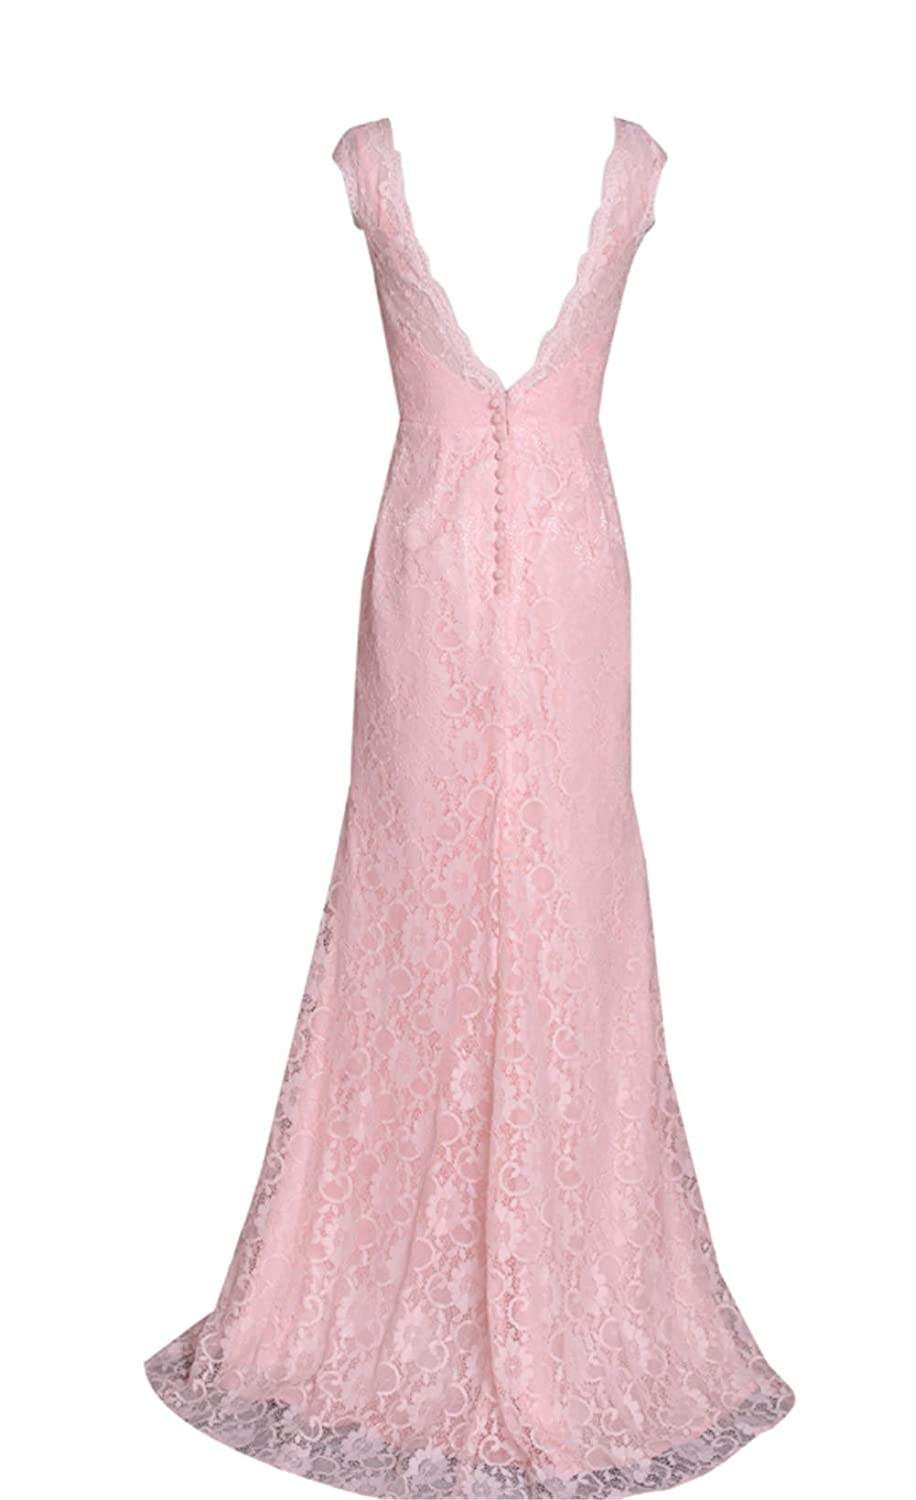 AngelDragon A-Line Lace Floor Length Evening Gowns Long Prom Dress